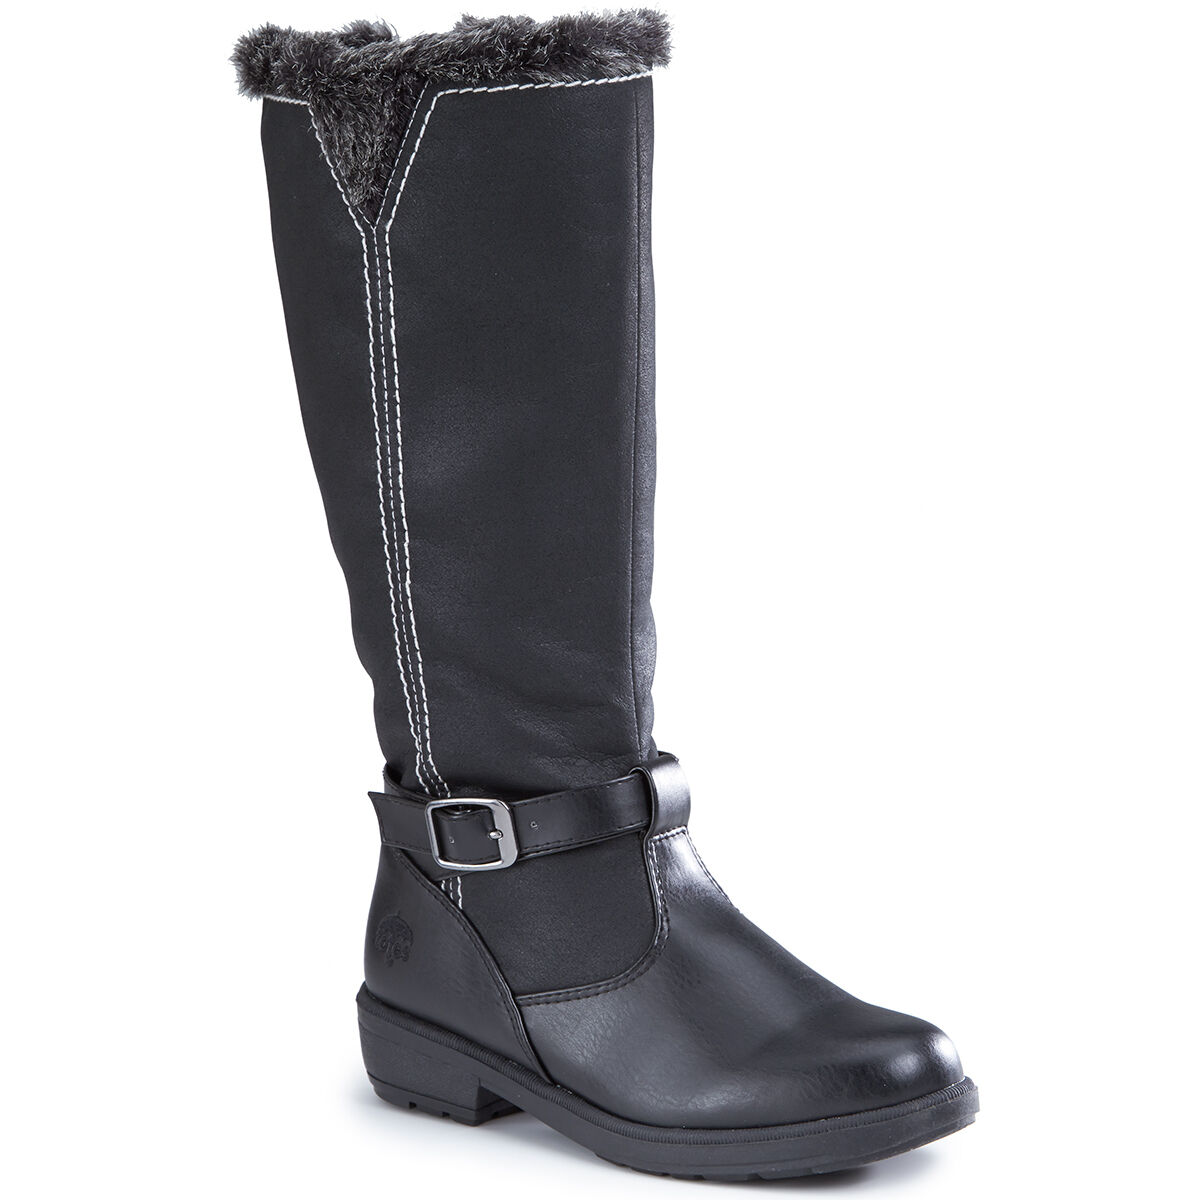 NEW NEW NEW femmes noir WATERPROOF FAUX FUR TOTES RIDING bottes WITH SIDE ZIPPER BUCKLE 124857